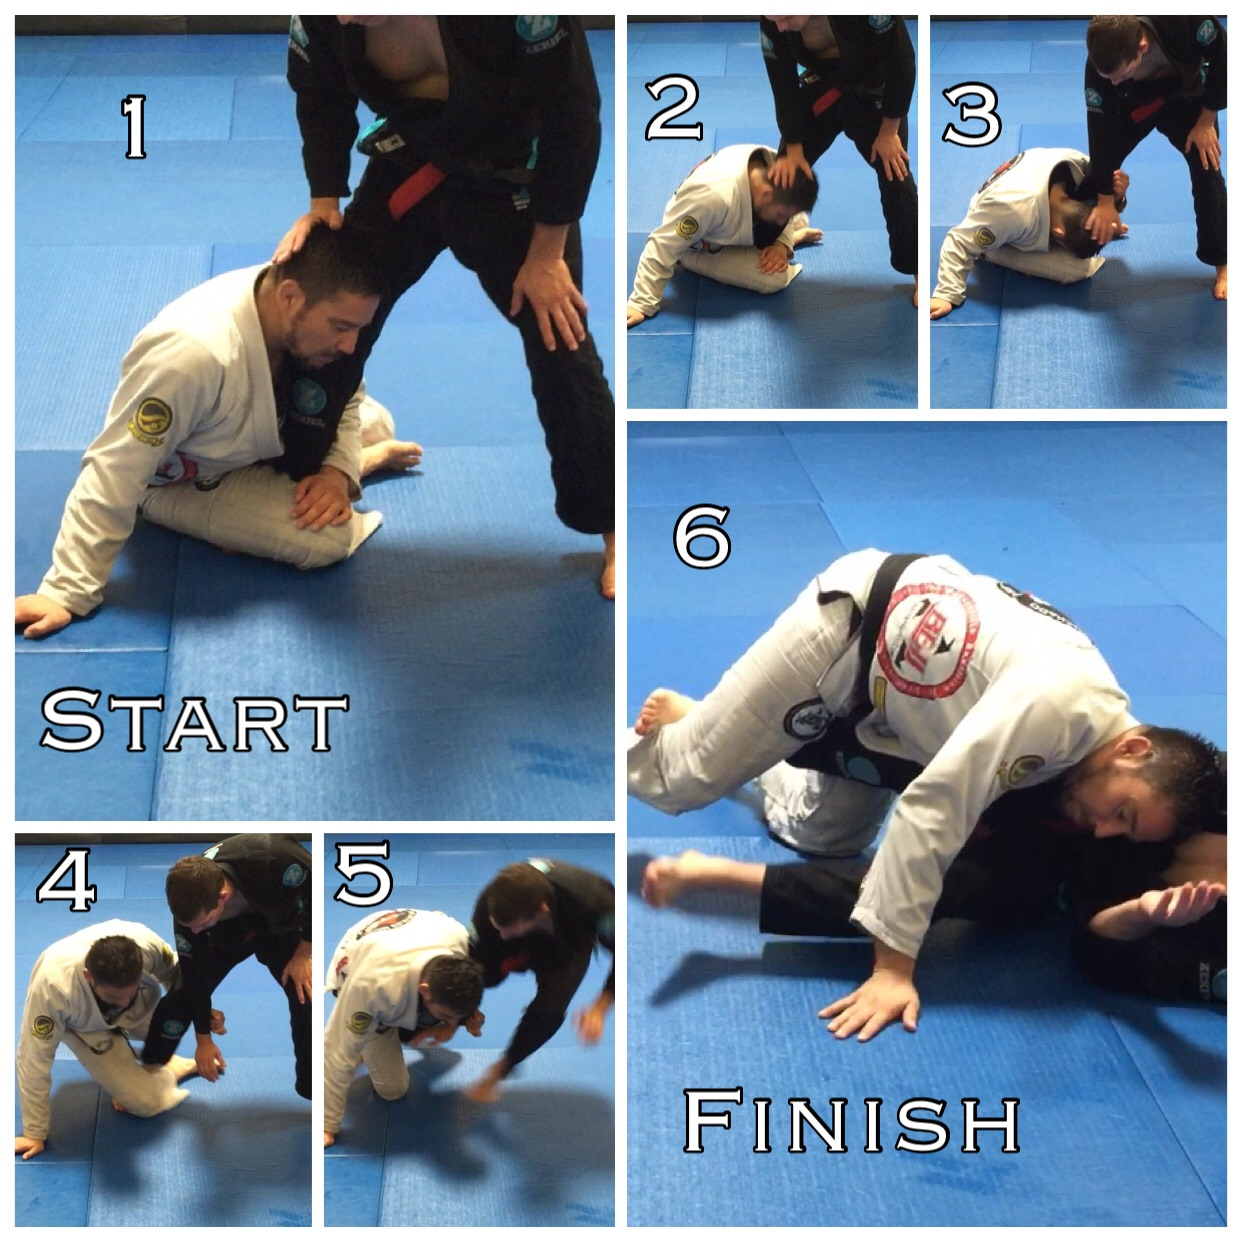 Single Leg take down From Koala. This option works with or without grabbing their arm. However grabbing their sleeve provides several counter options.   See example below.